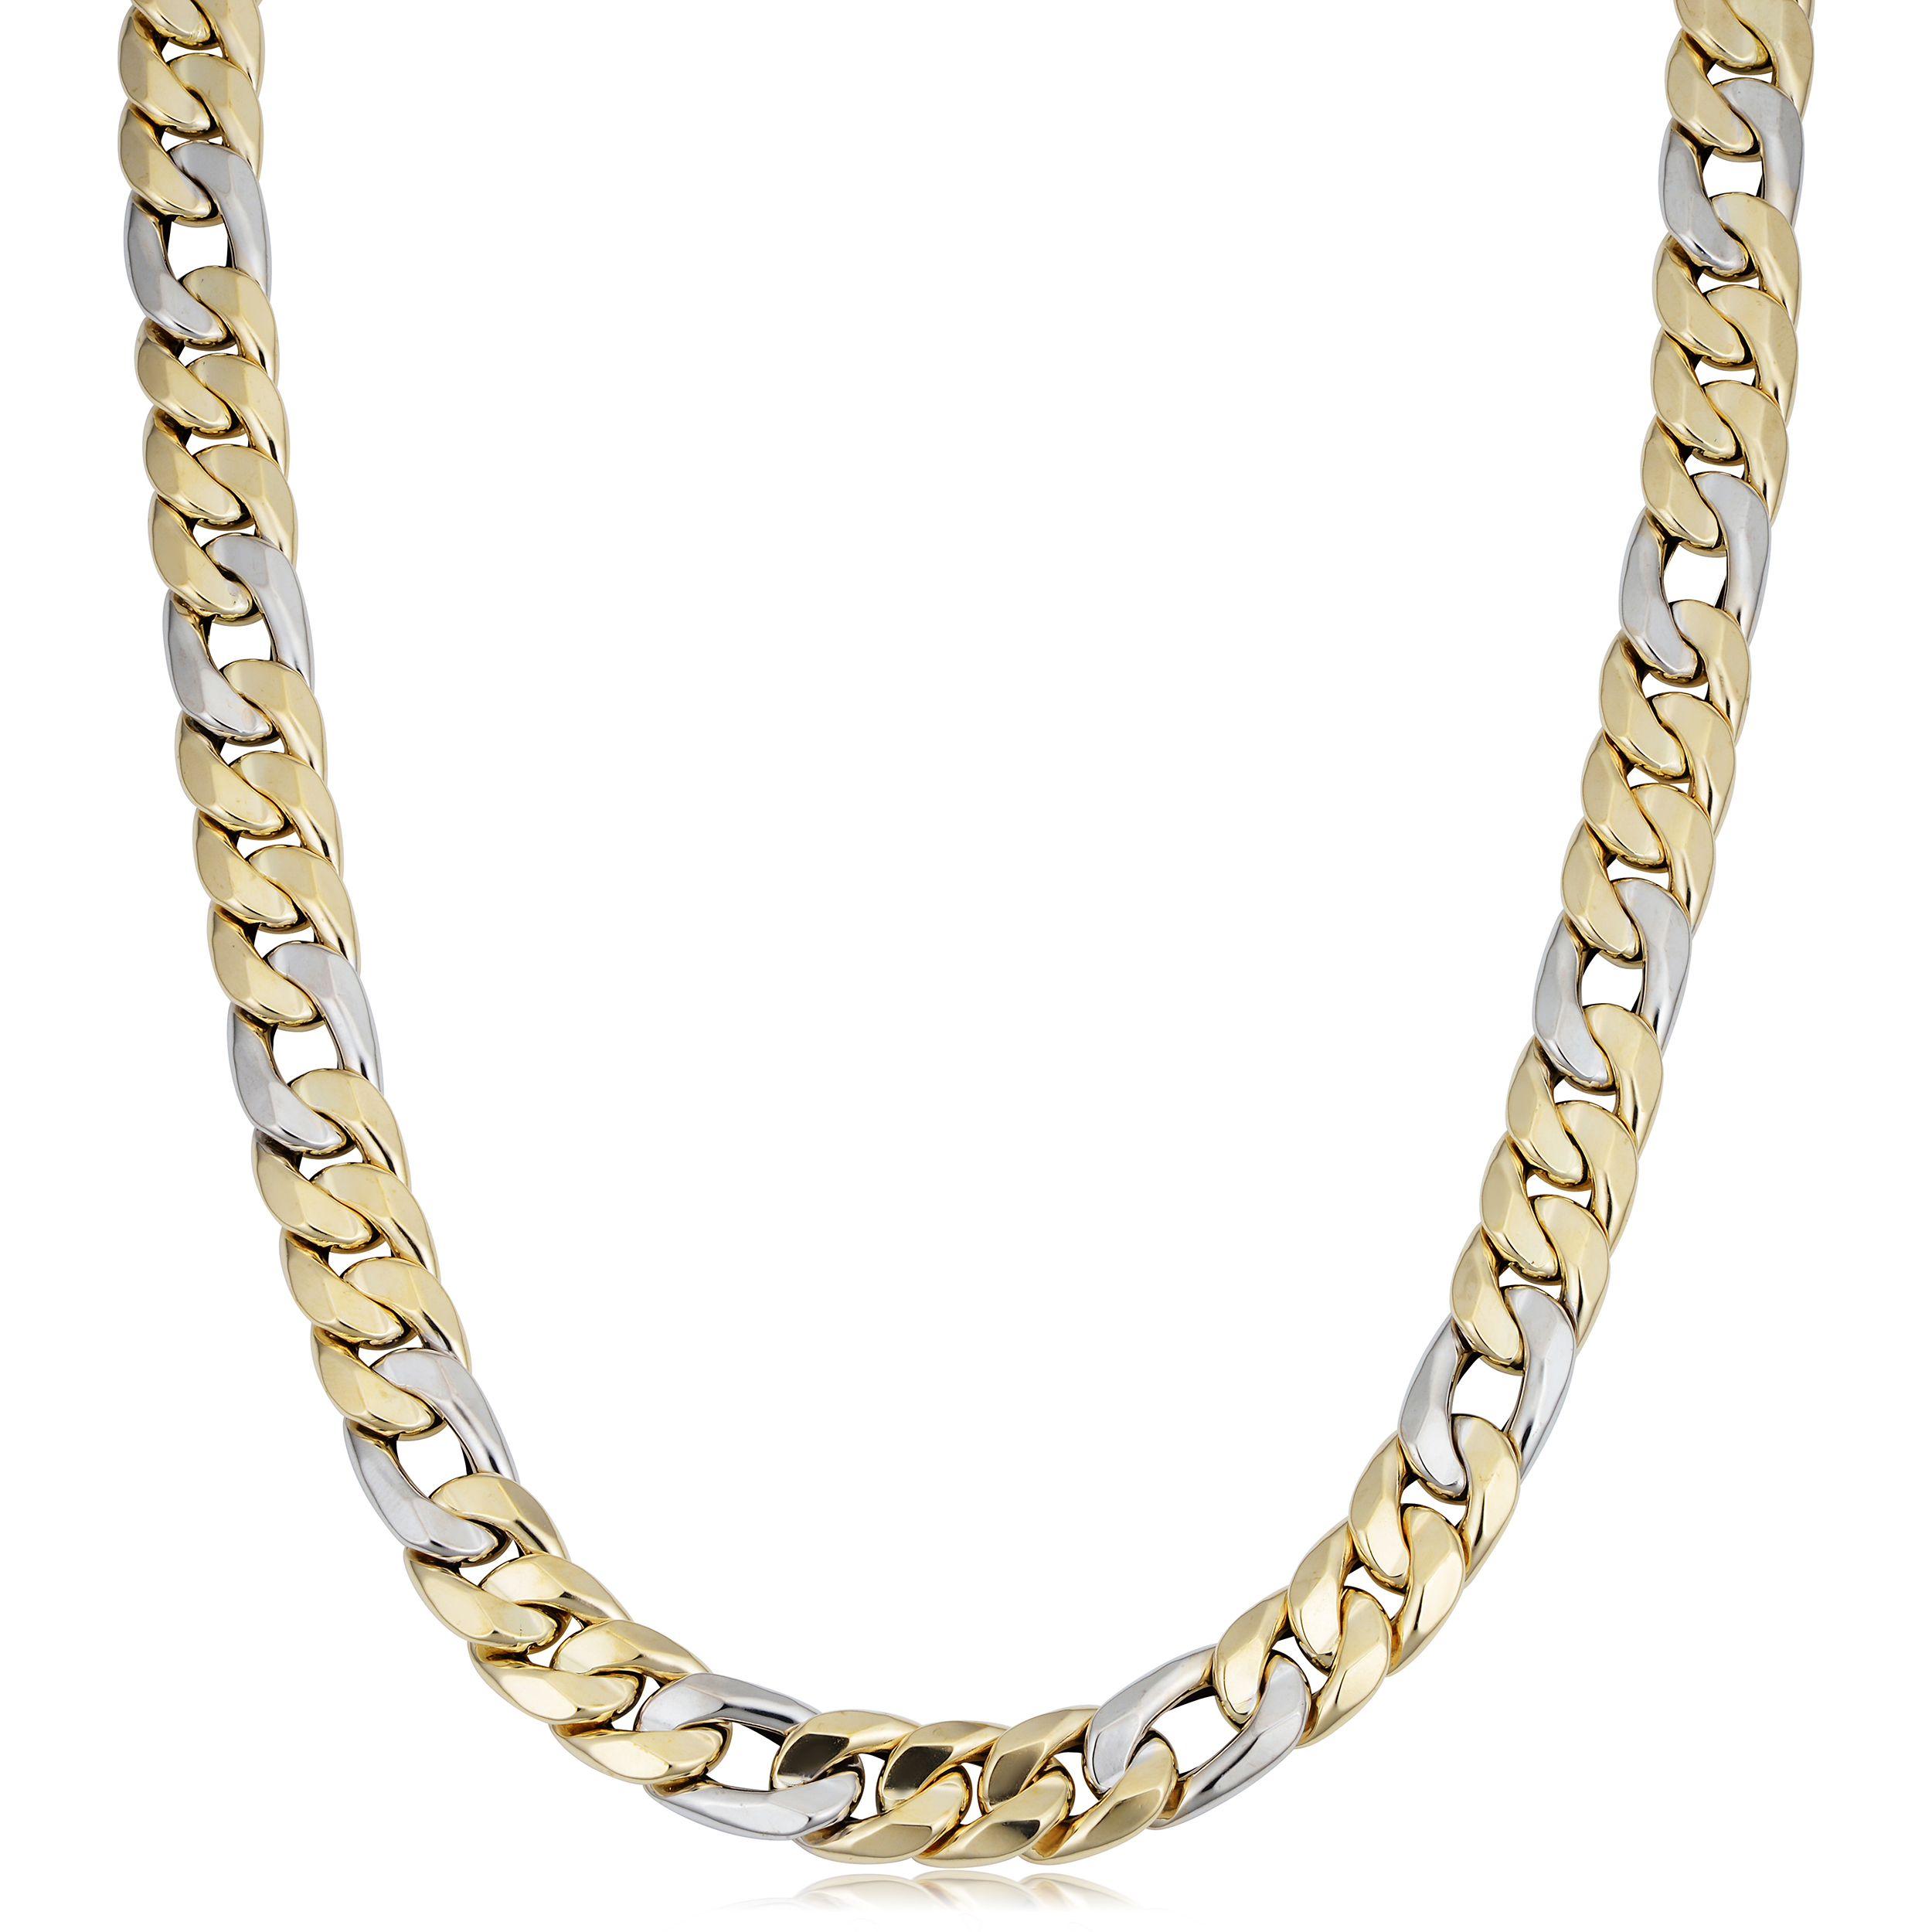 114a2a028ba77 Details about 14k Yellow And White Gold Miami Cuban Curb Hollow Link Mens  Necklace, 22